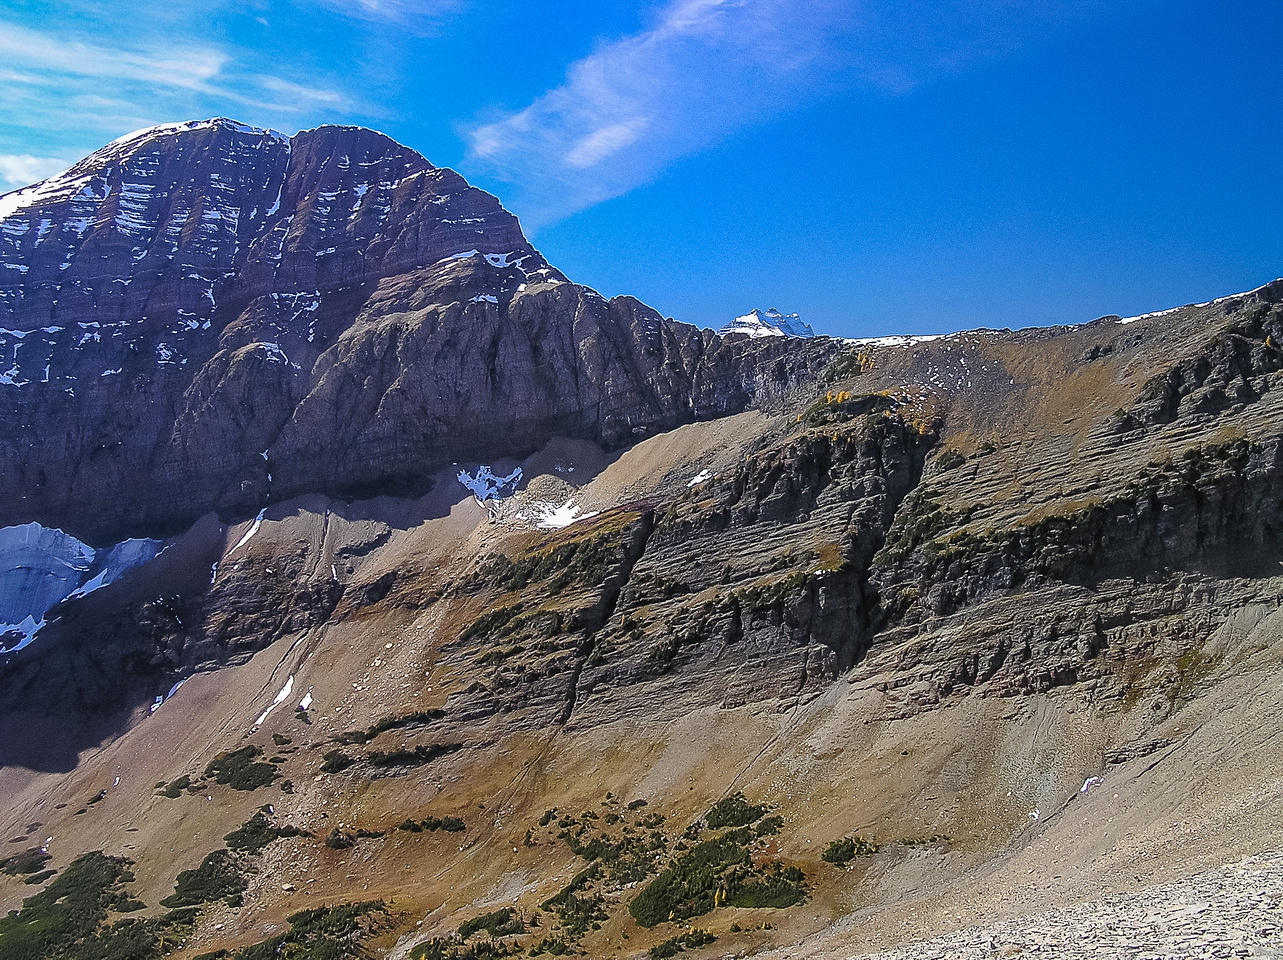 Mount Carthew's east face and the connecting ridge to Buchanan as seen from the ridge up to Buchanan Peak.